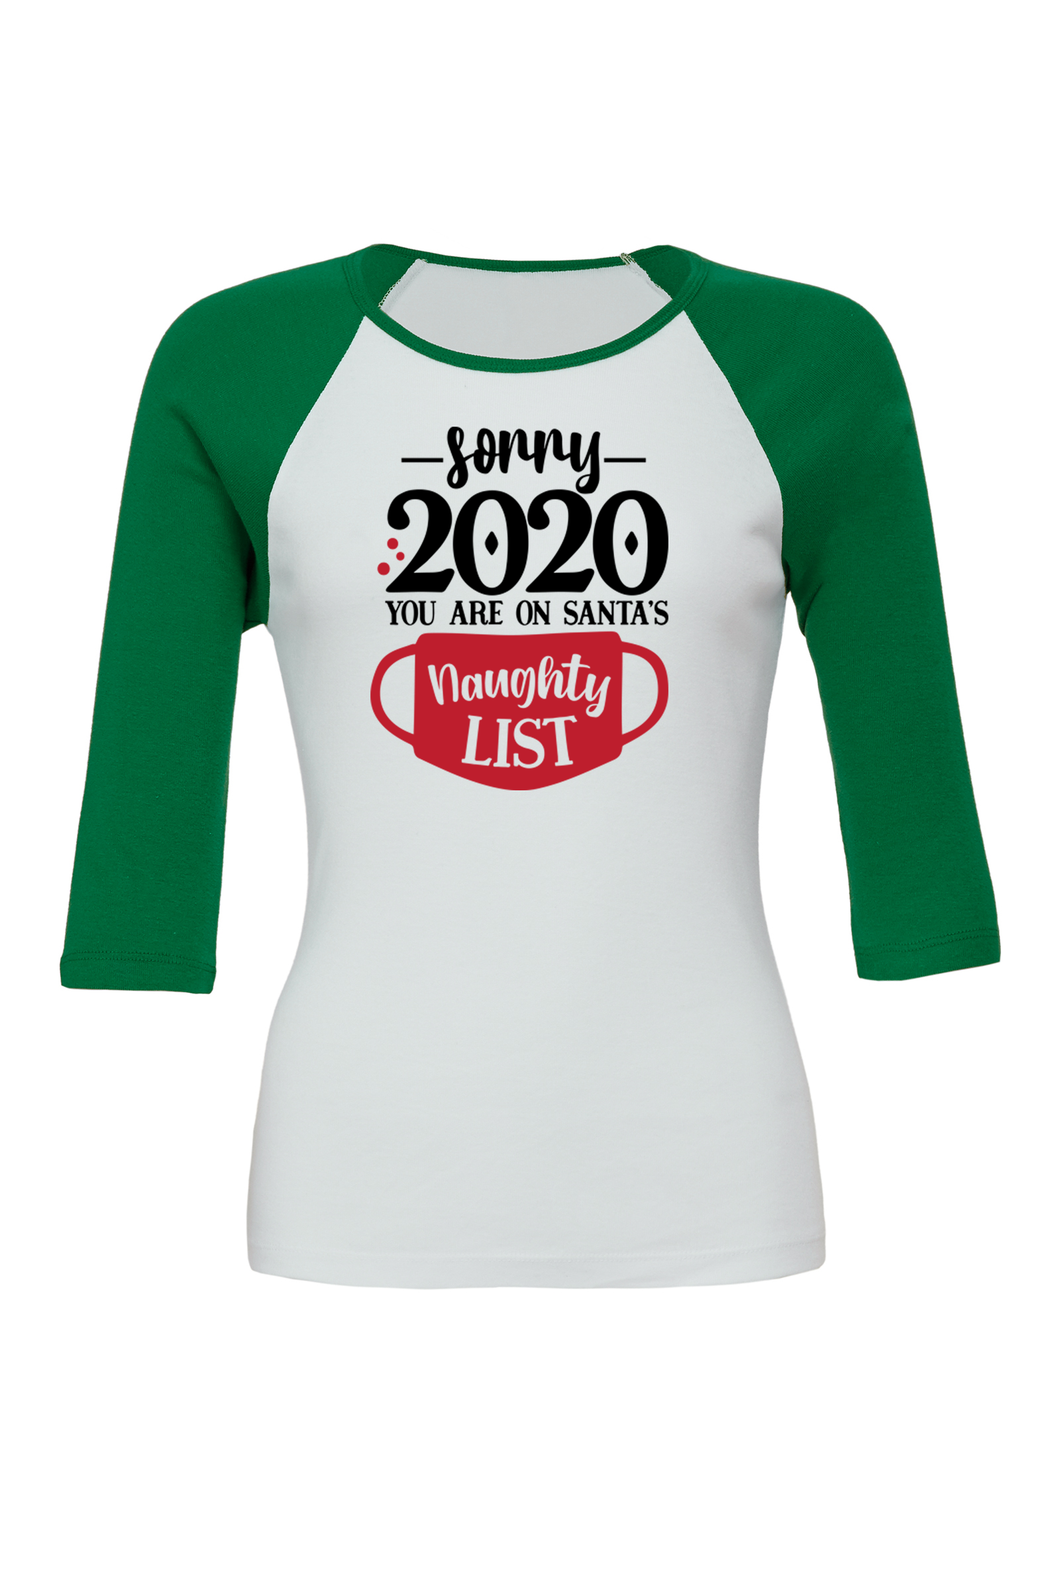 CHRISTMAS SHIRT SORRY 2020